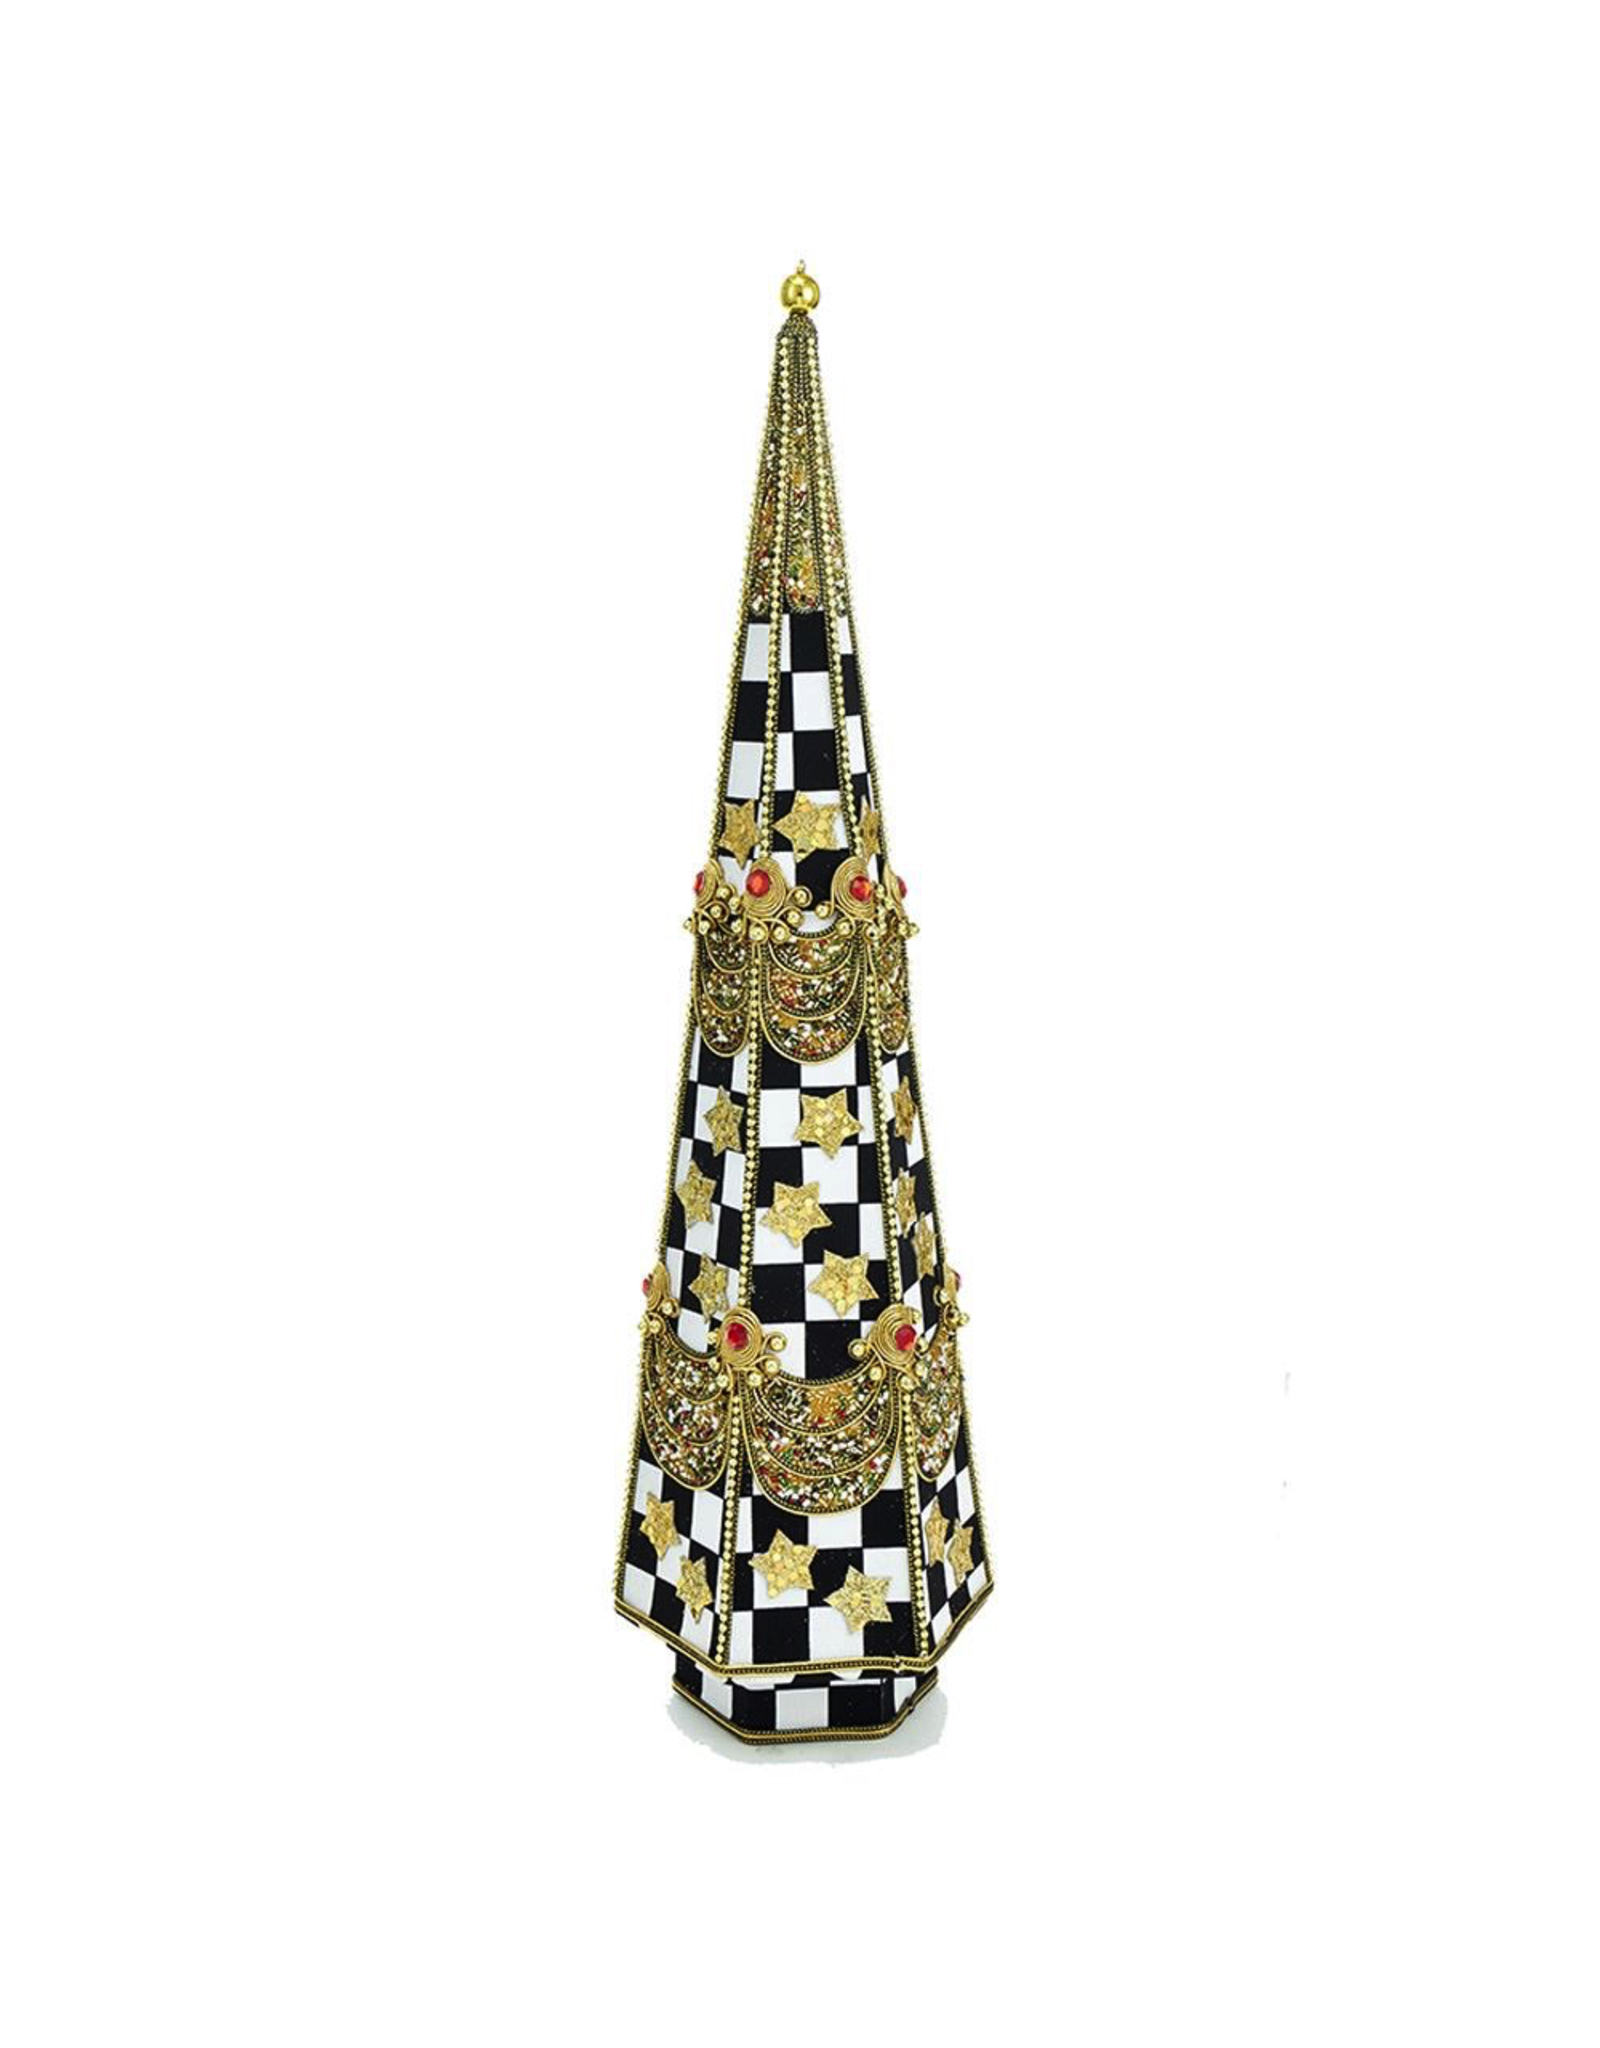 Kurt Adler Black White Checkered Table-piece w Gold Accents 20 inch